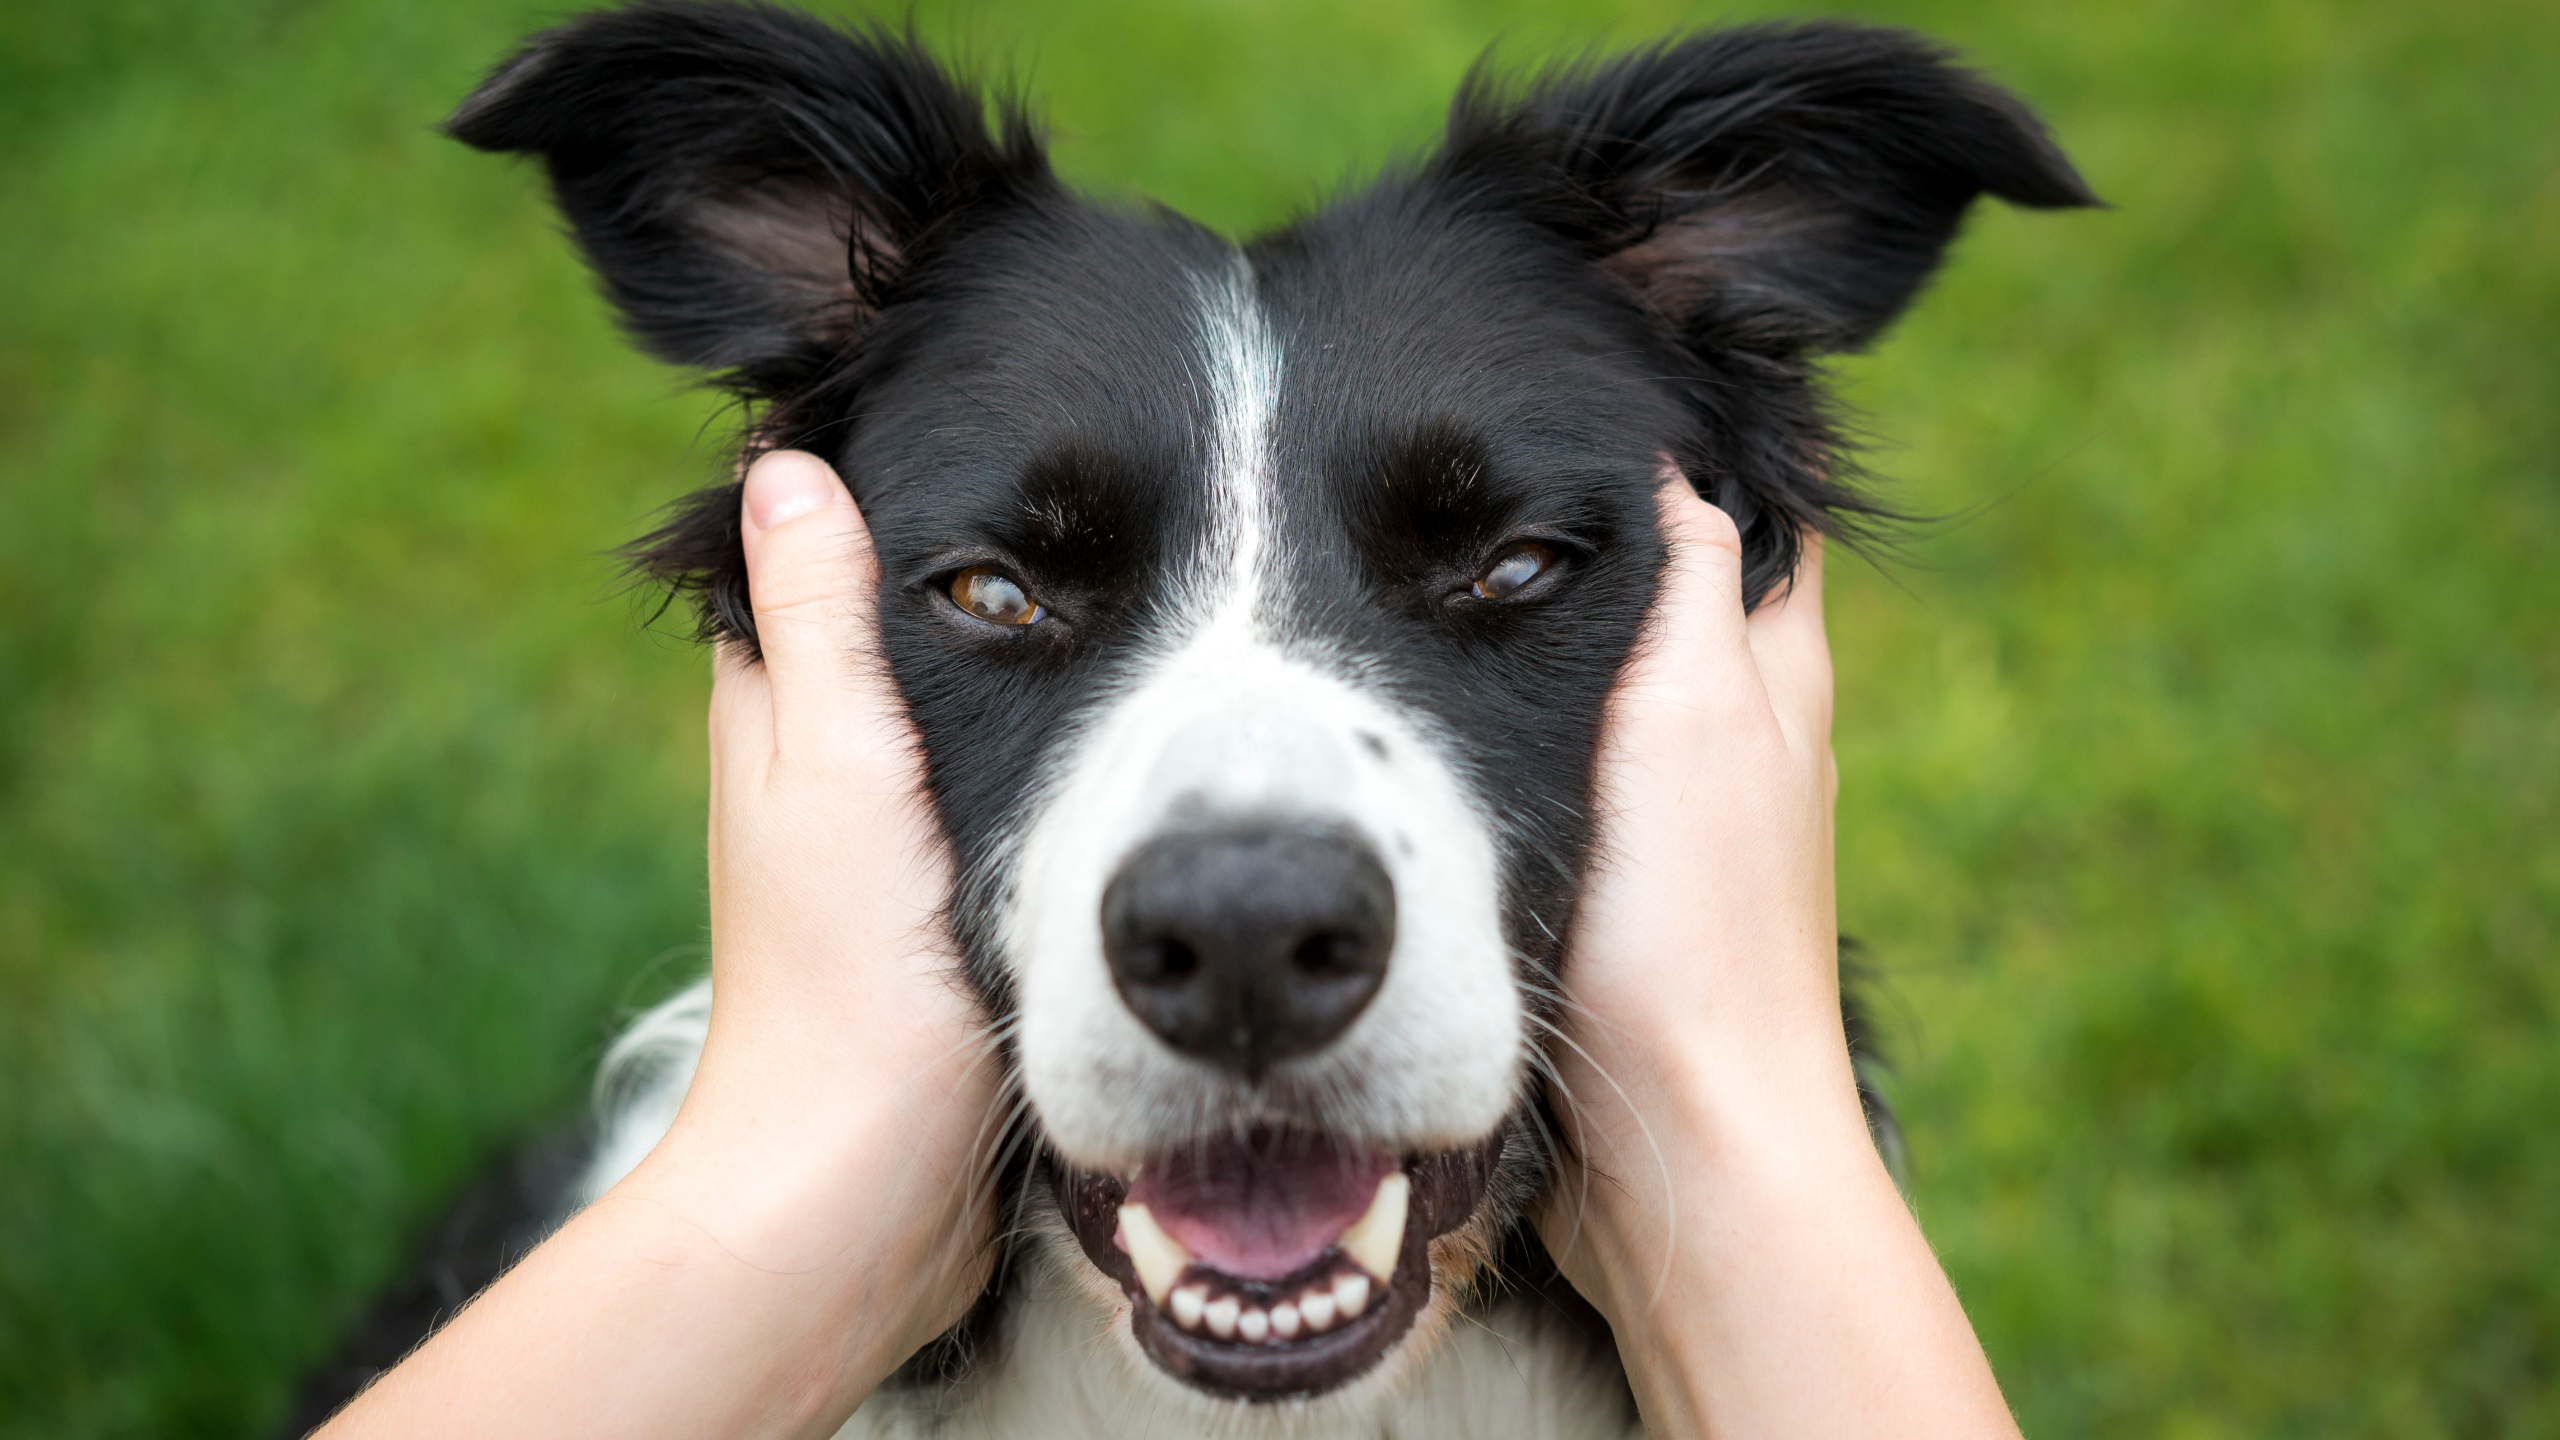 A Border Collie is seen in this file photo. (Credit: Getty Images)